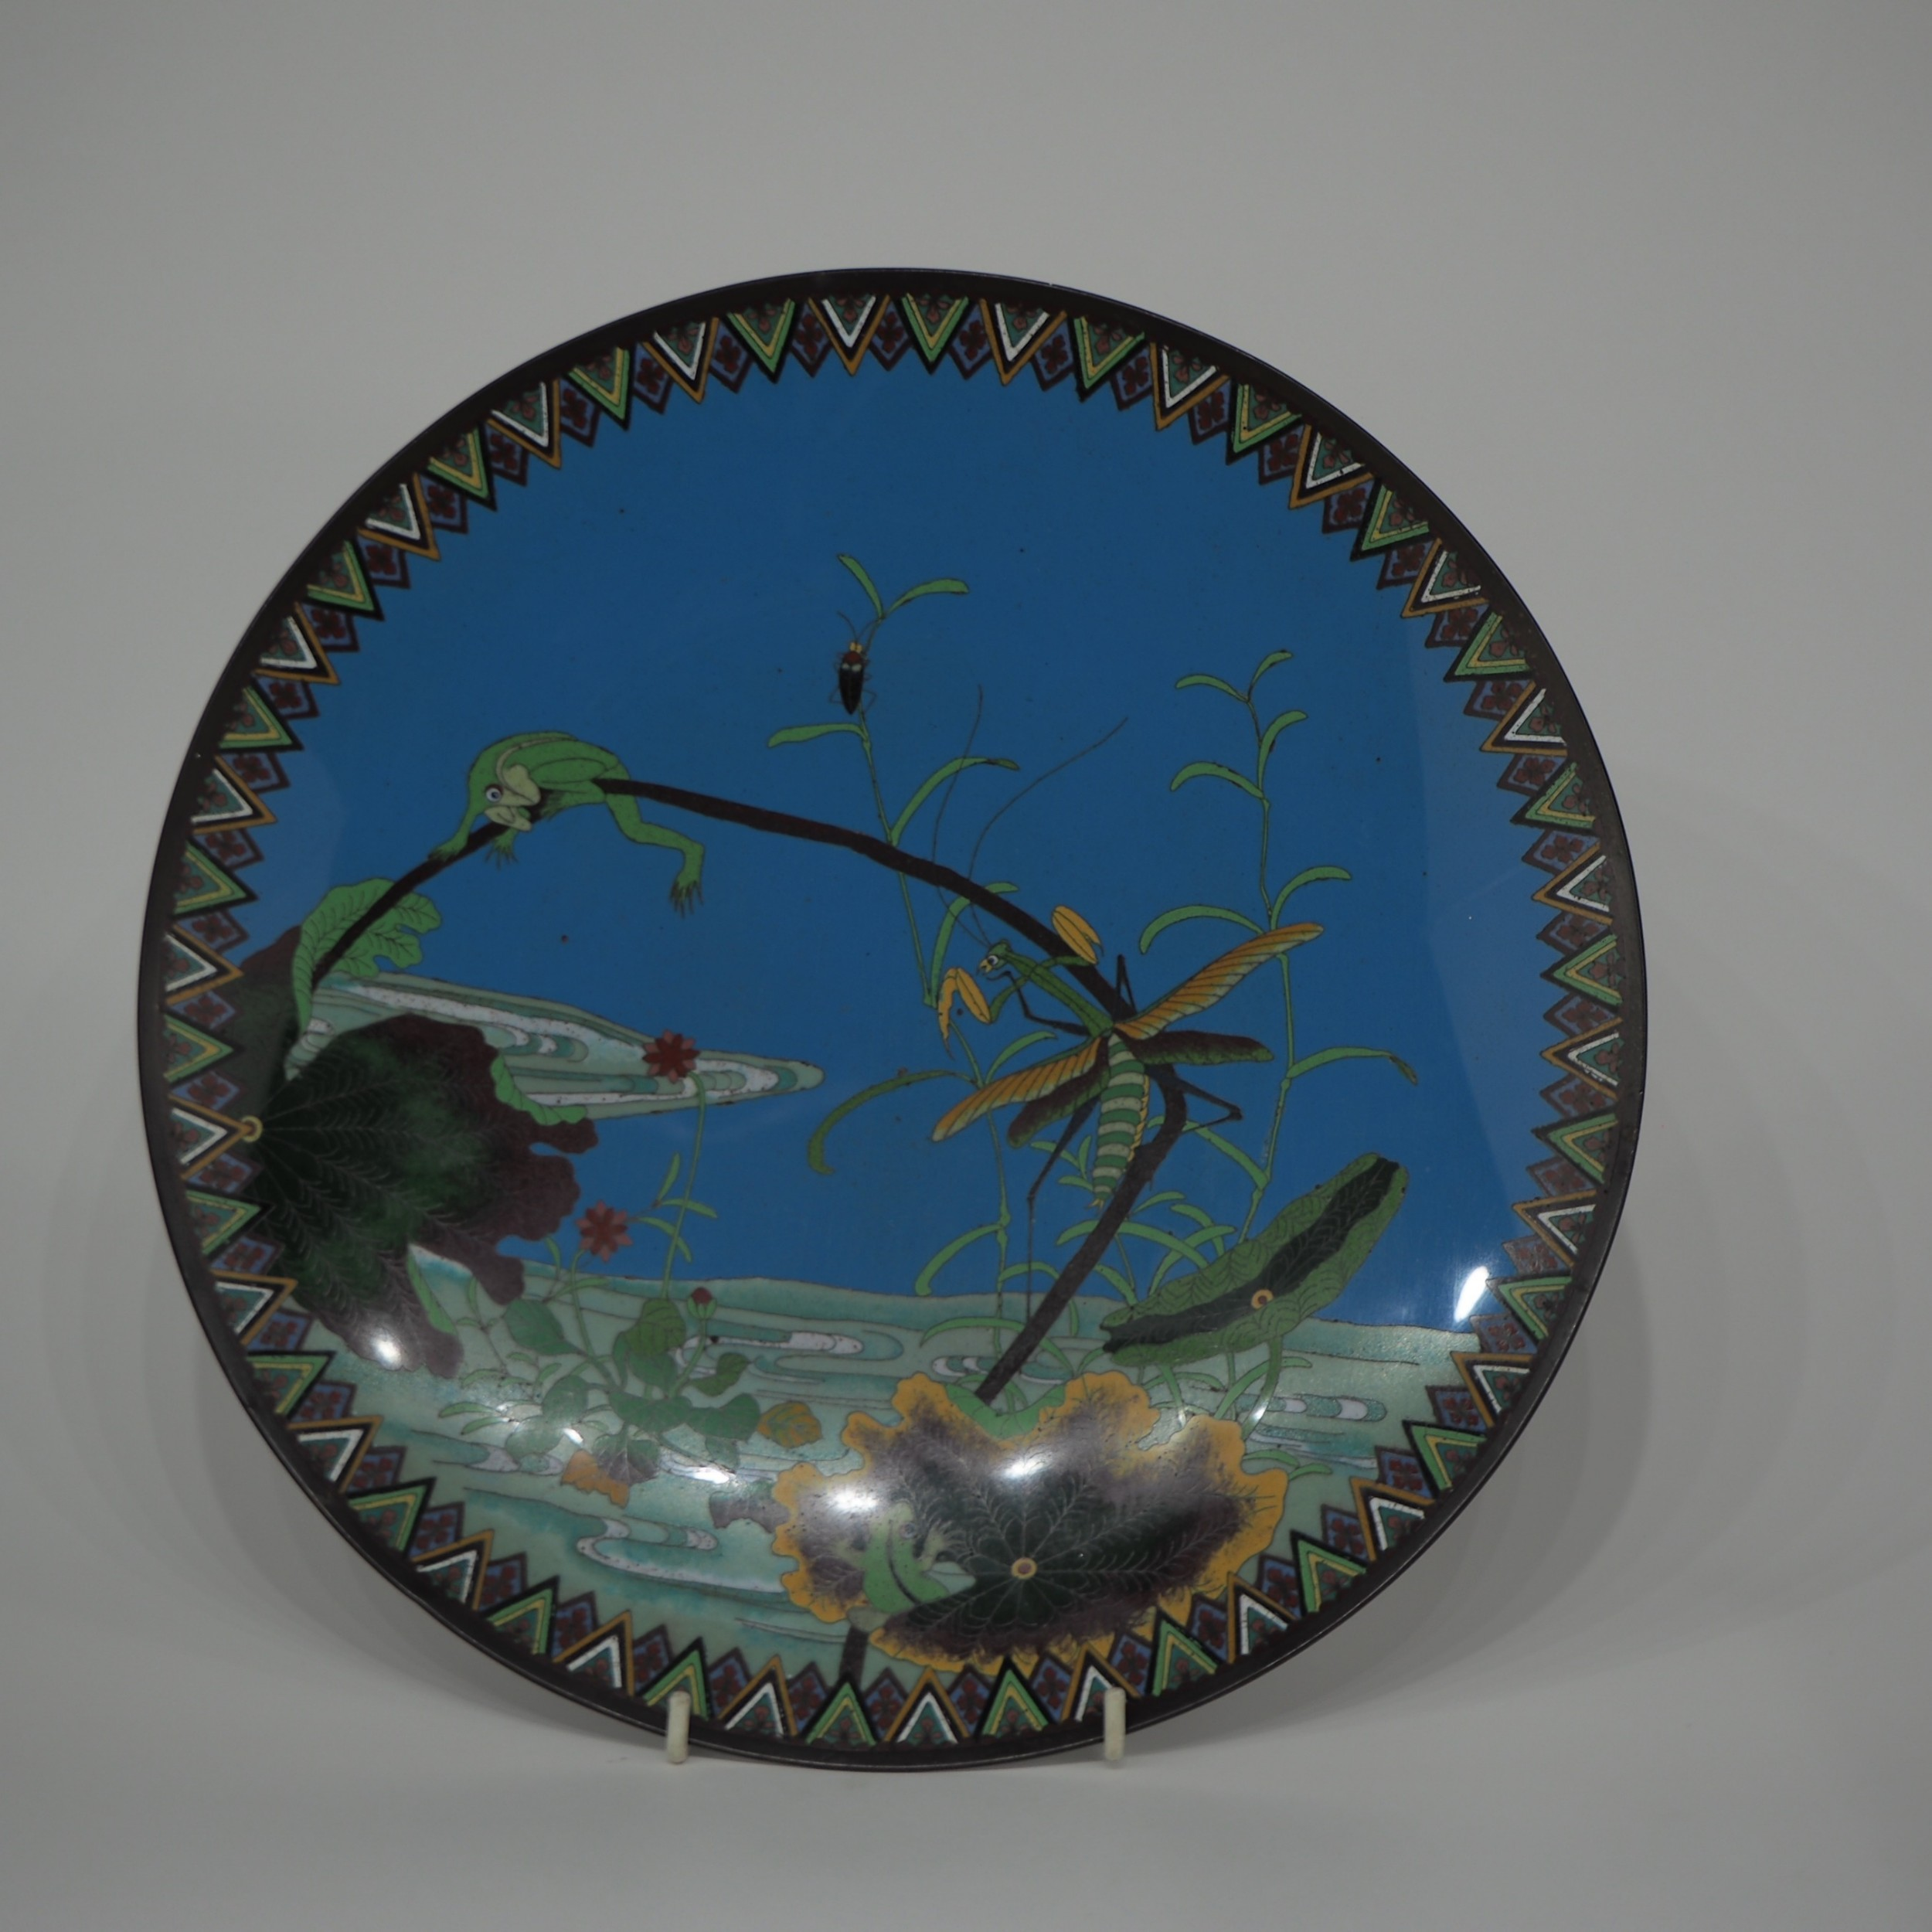 japanese cloisonne plate with decoration of a frog and praying mantis